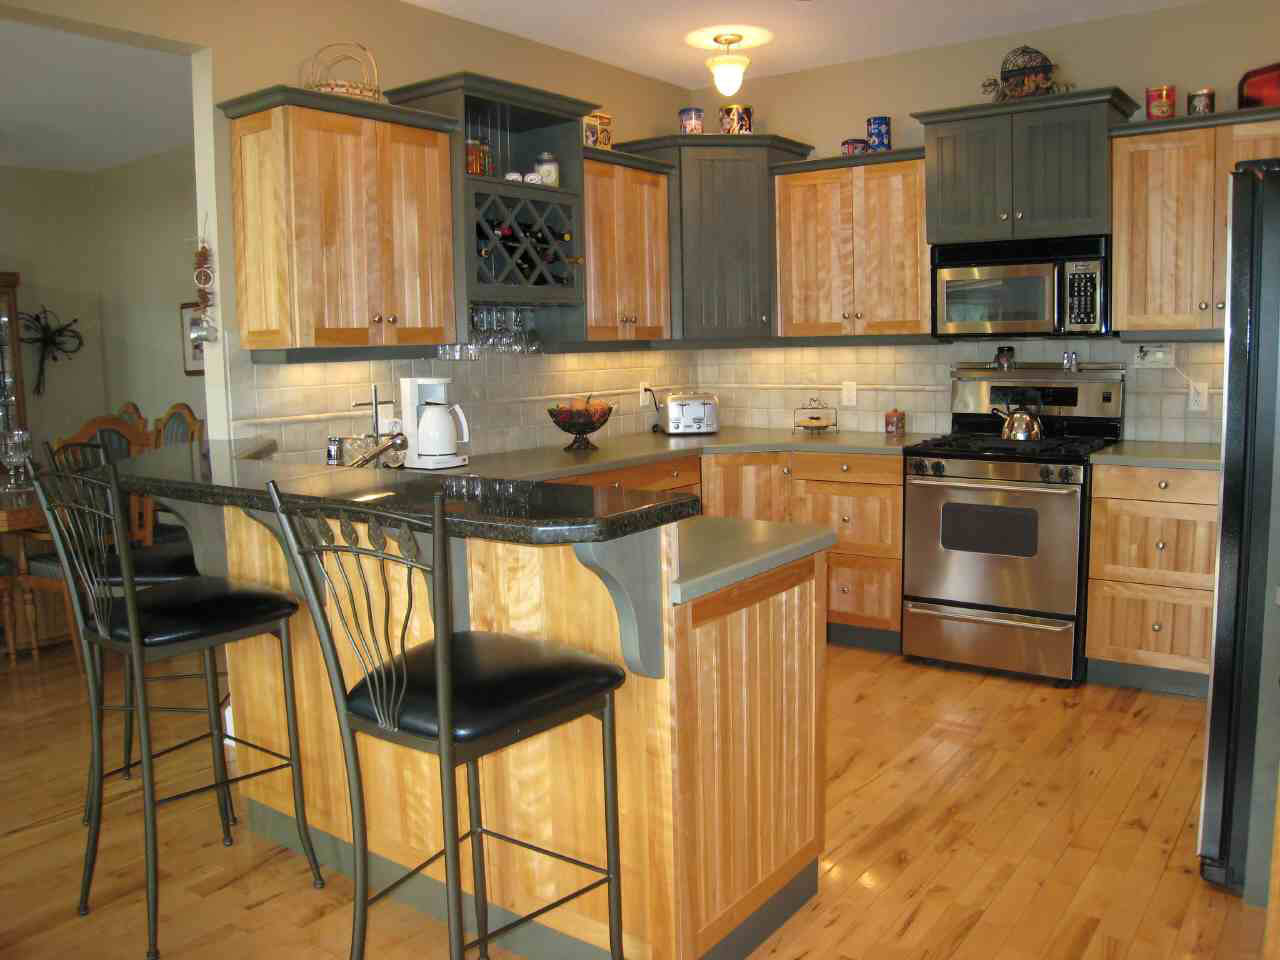 Small Kitchen Ideas with Two Chairs and Mini Bar Concept Kitchen